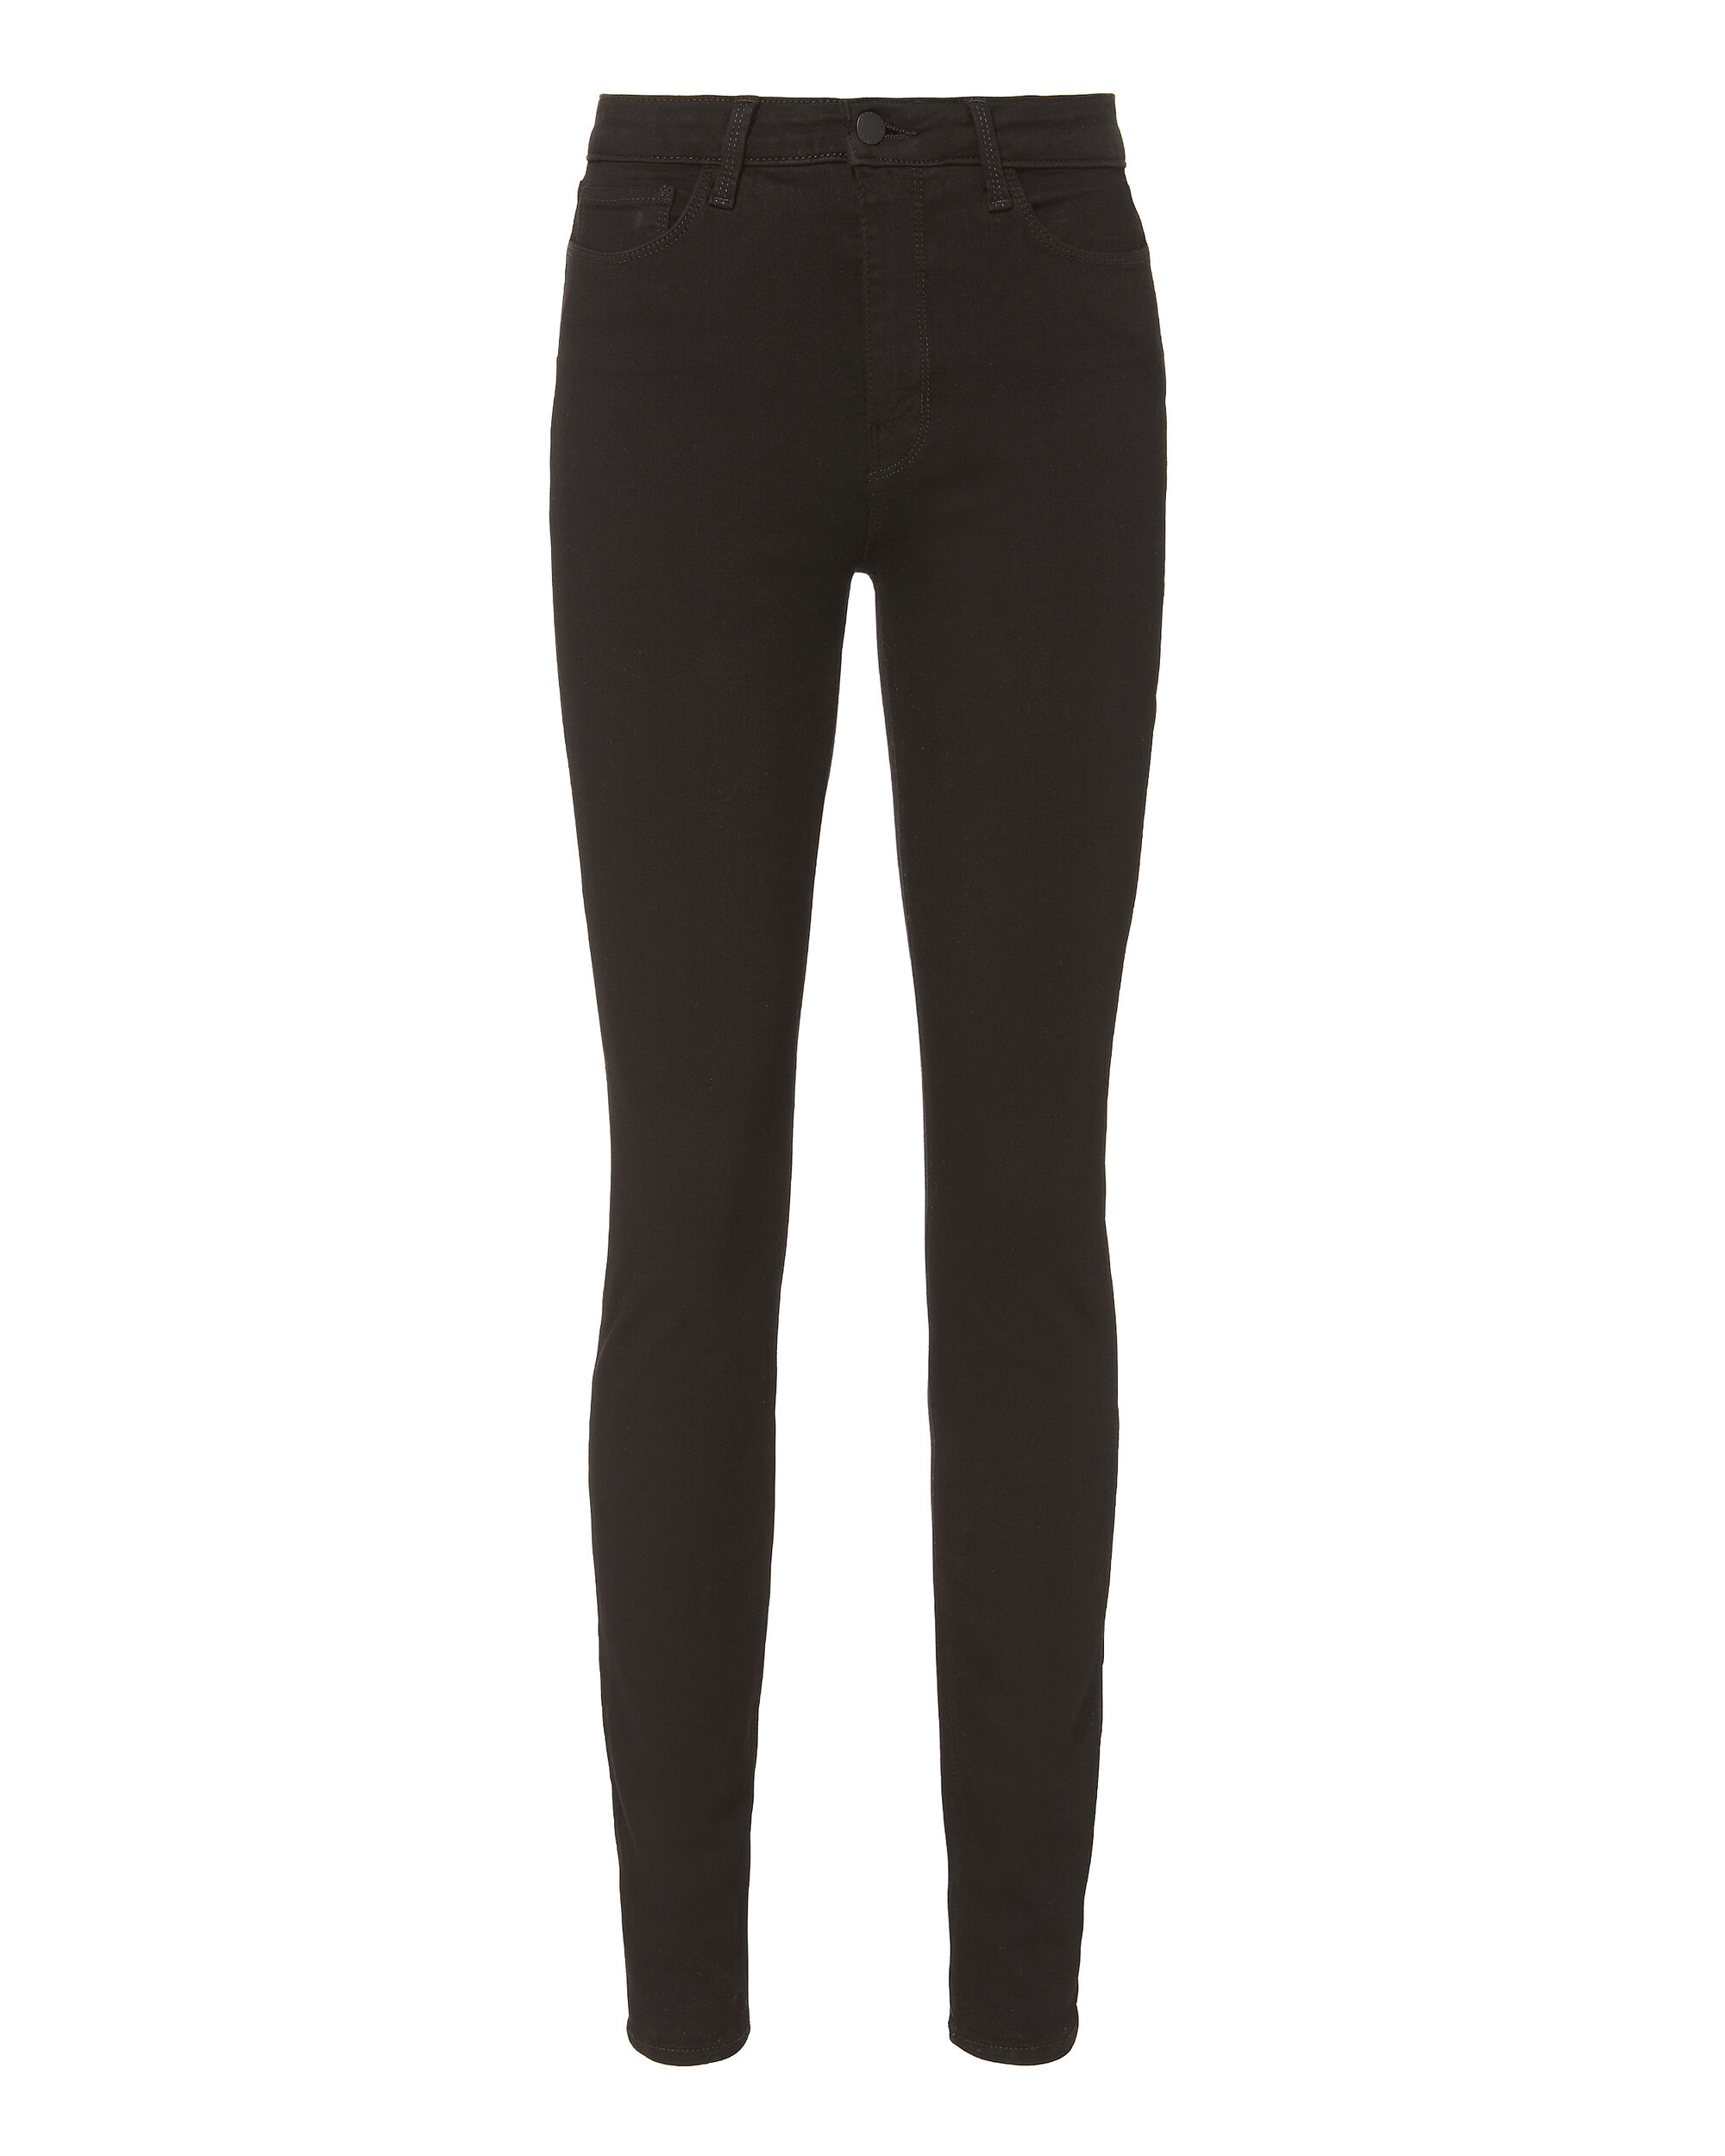 Marguerite High-Rise Noir Skinny Jeans, BLACK, hi-res